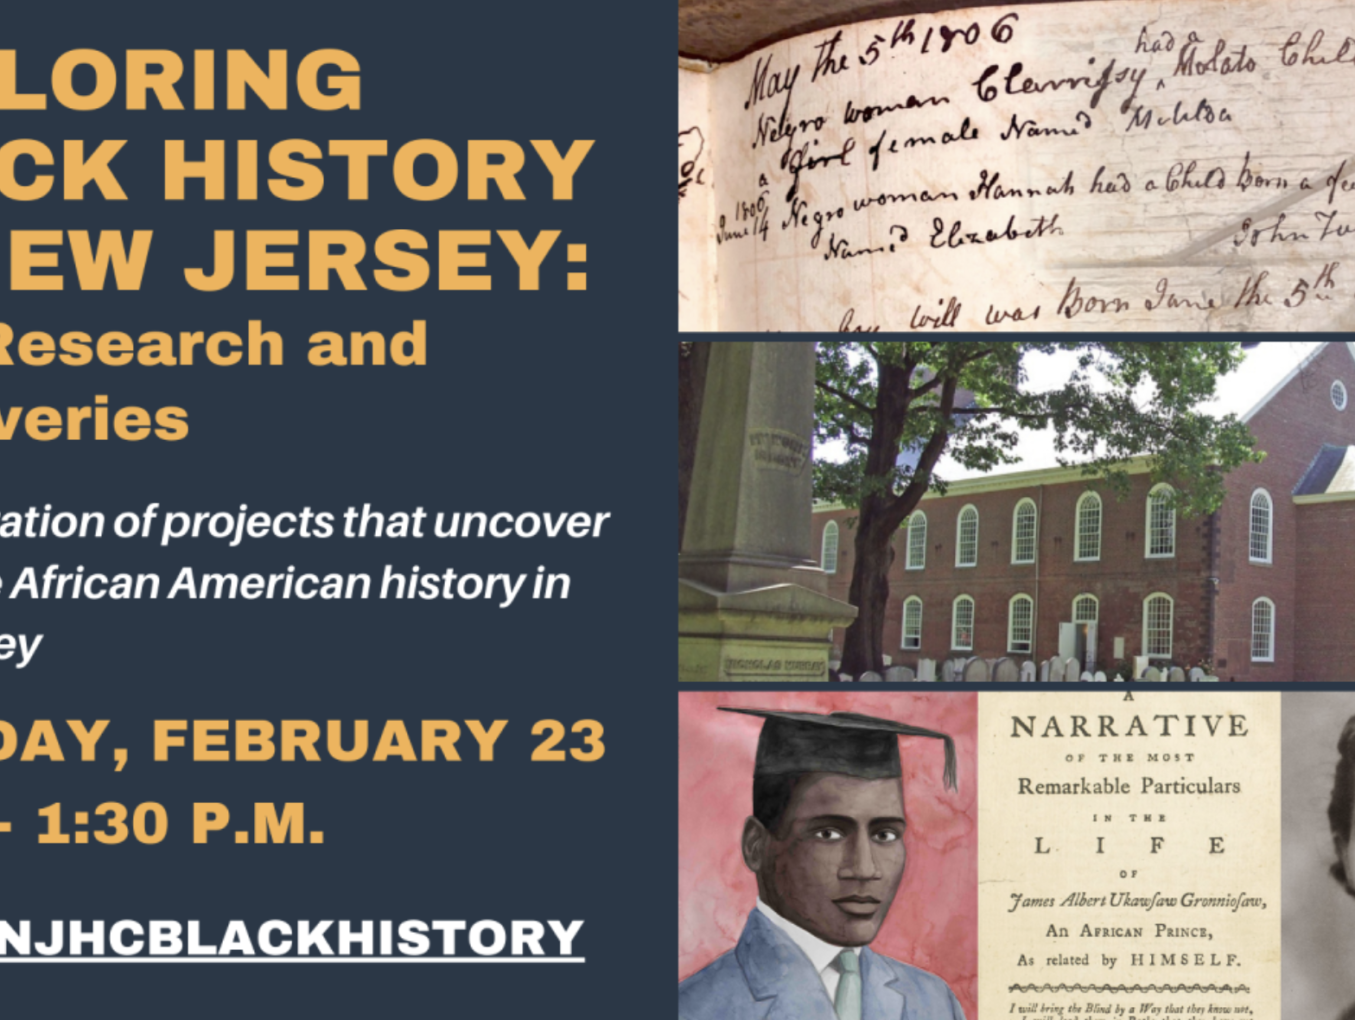 Exploring Black History in New Jersey: New Research and Discoveries